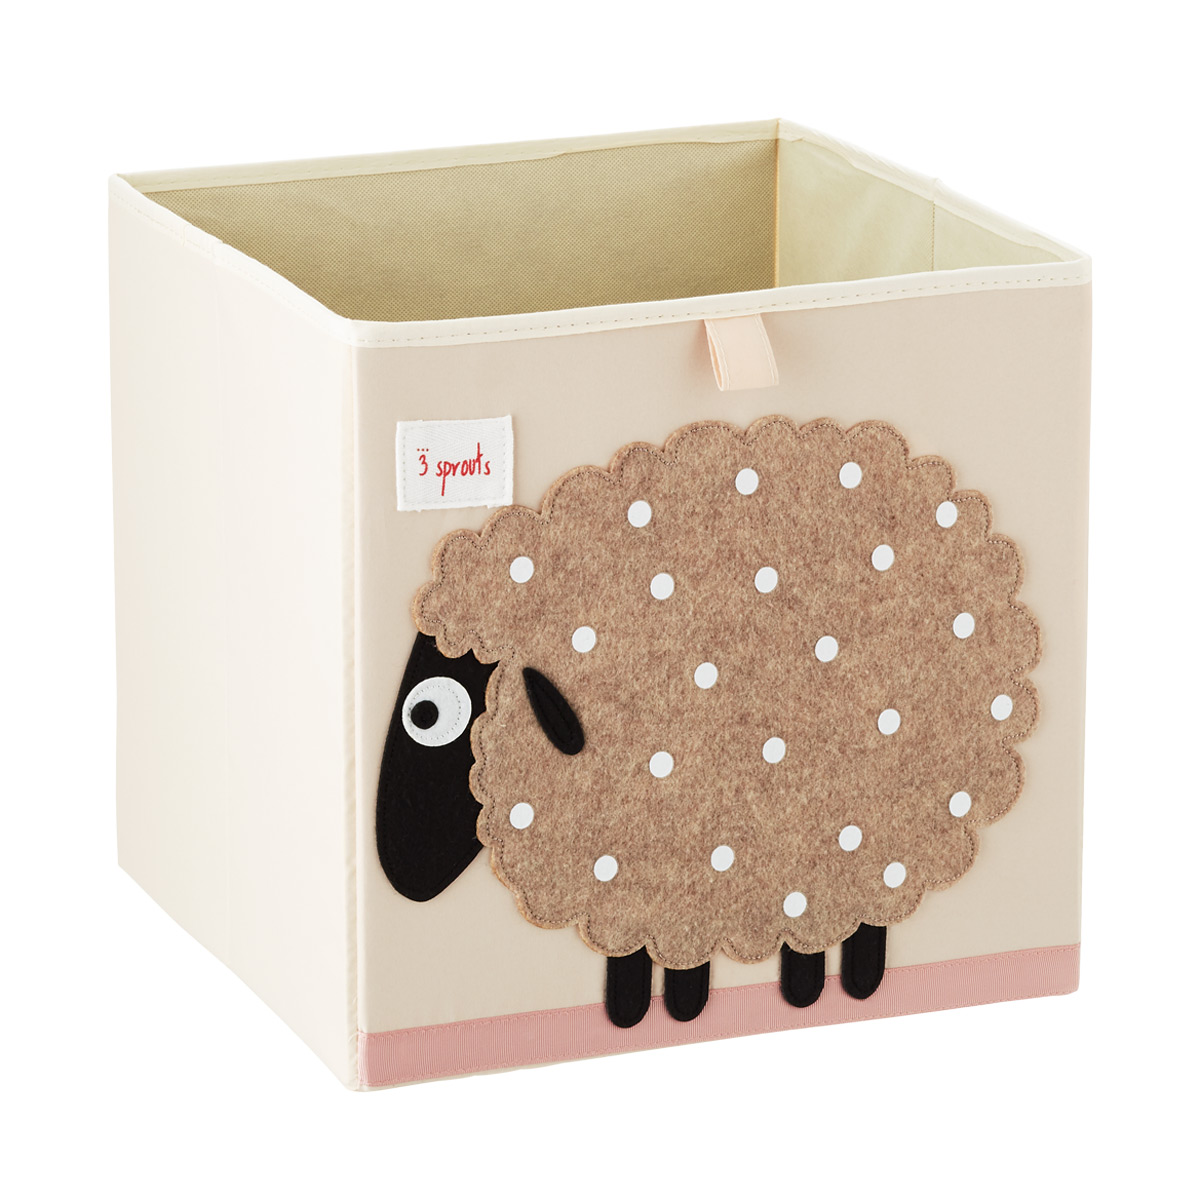 3 Sprouts Sheep Toy Storage Cube